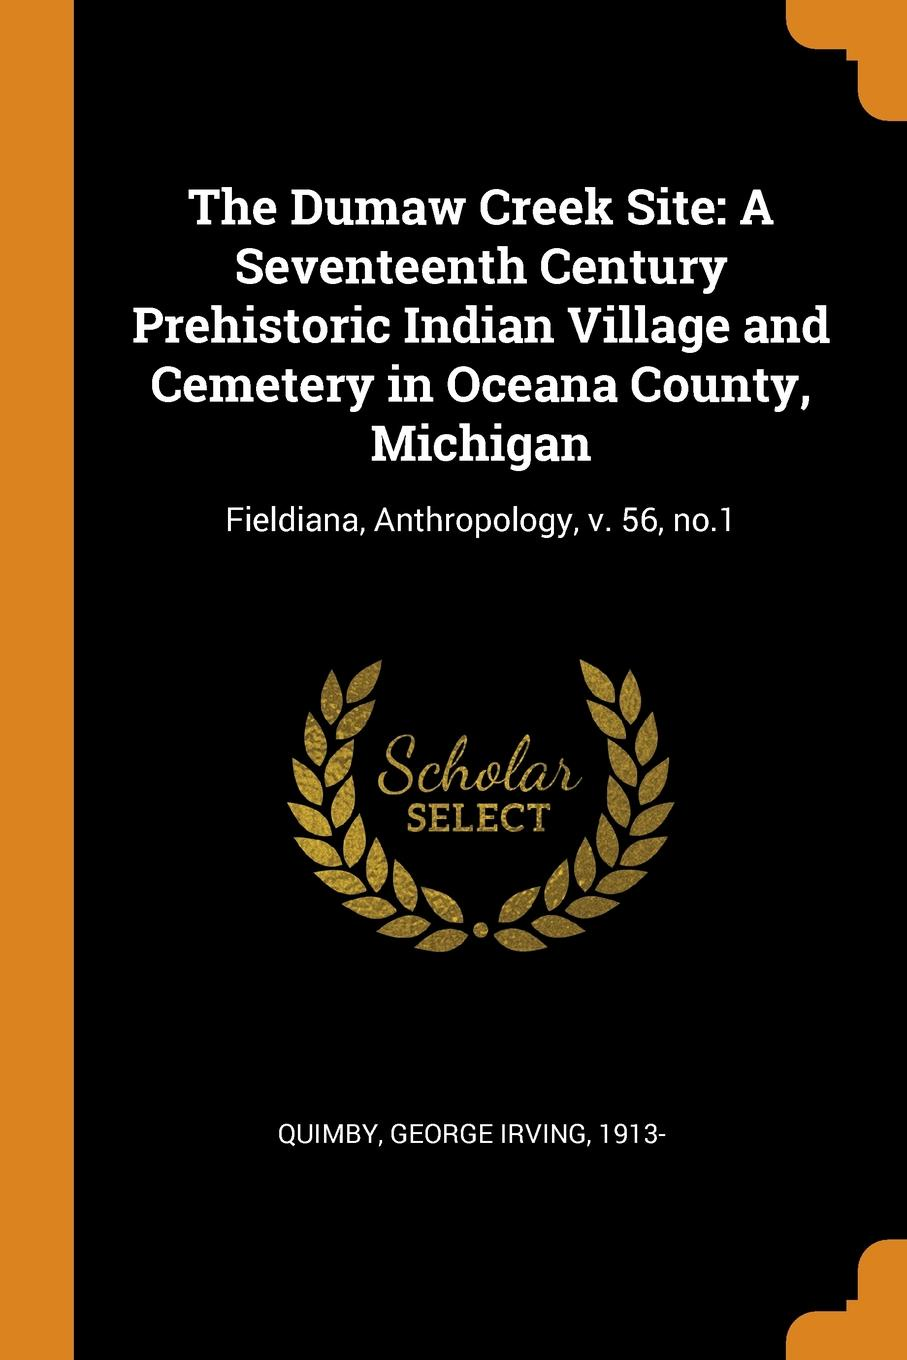 George Irving Quimby The Dumaw Creek Site. A Seventeenth Century Prehistoric Indian Village and Cemetery in Oceana County, Michigan: Fieldiana, Anthropology, v. 56, no.1